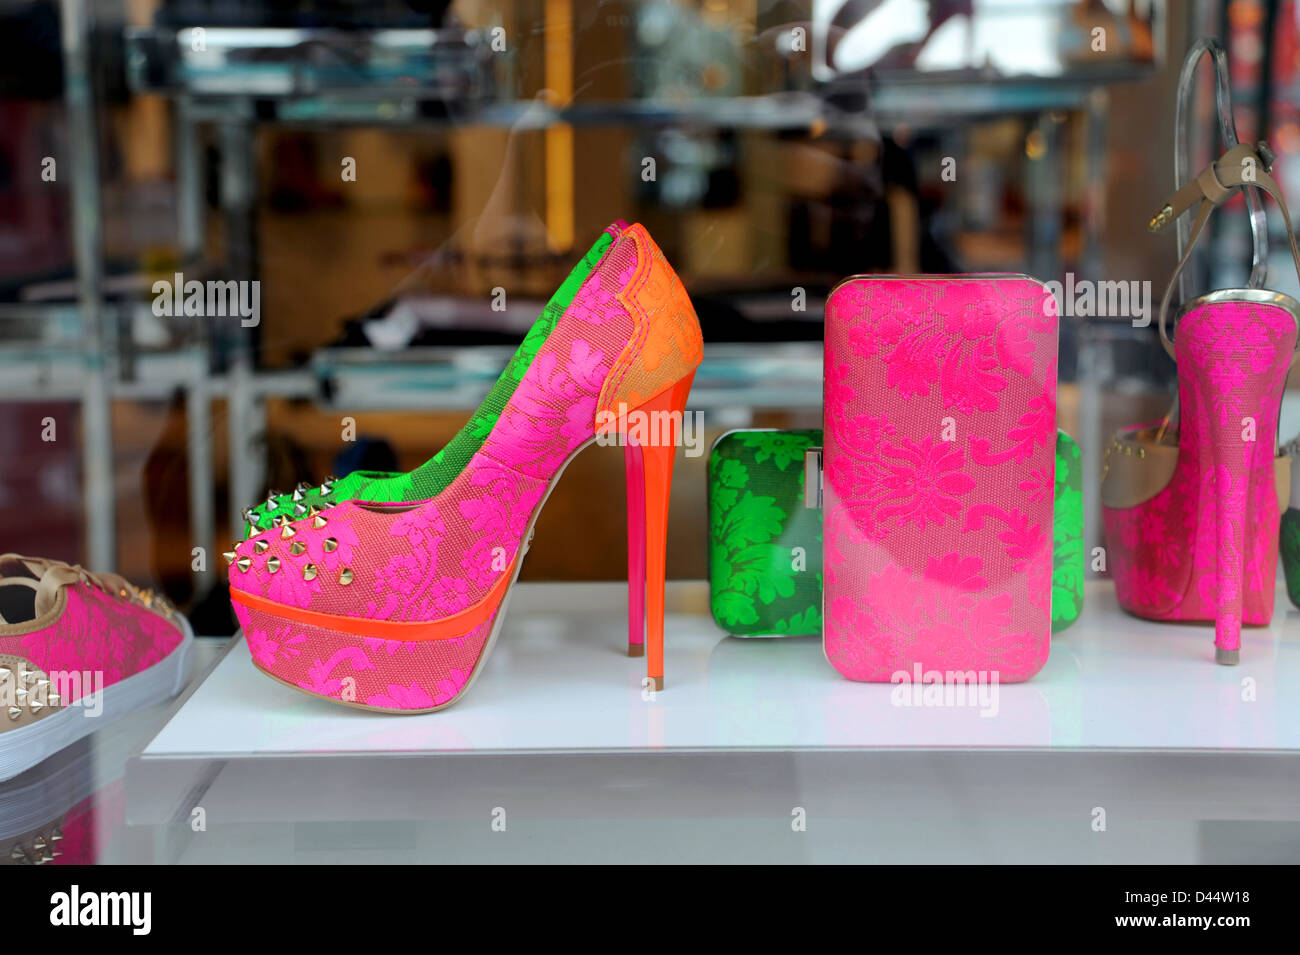 High Heel Shoes Stock Photos & High Heel Shoes Stock Images - Alamy